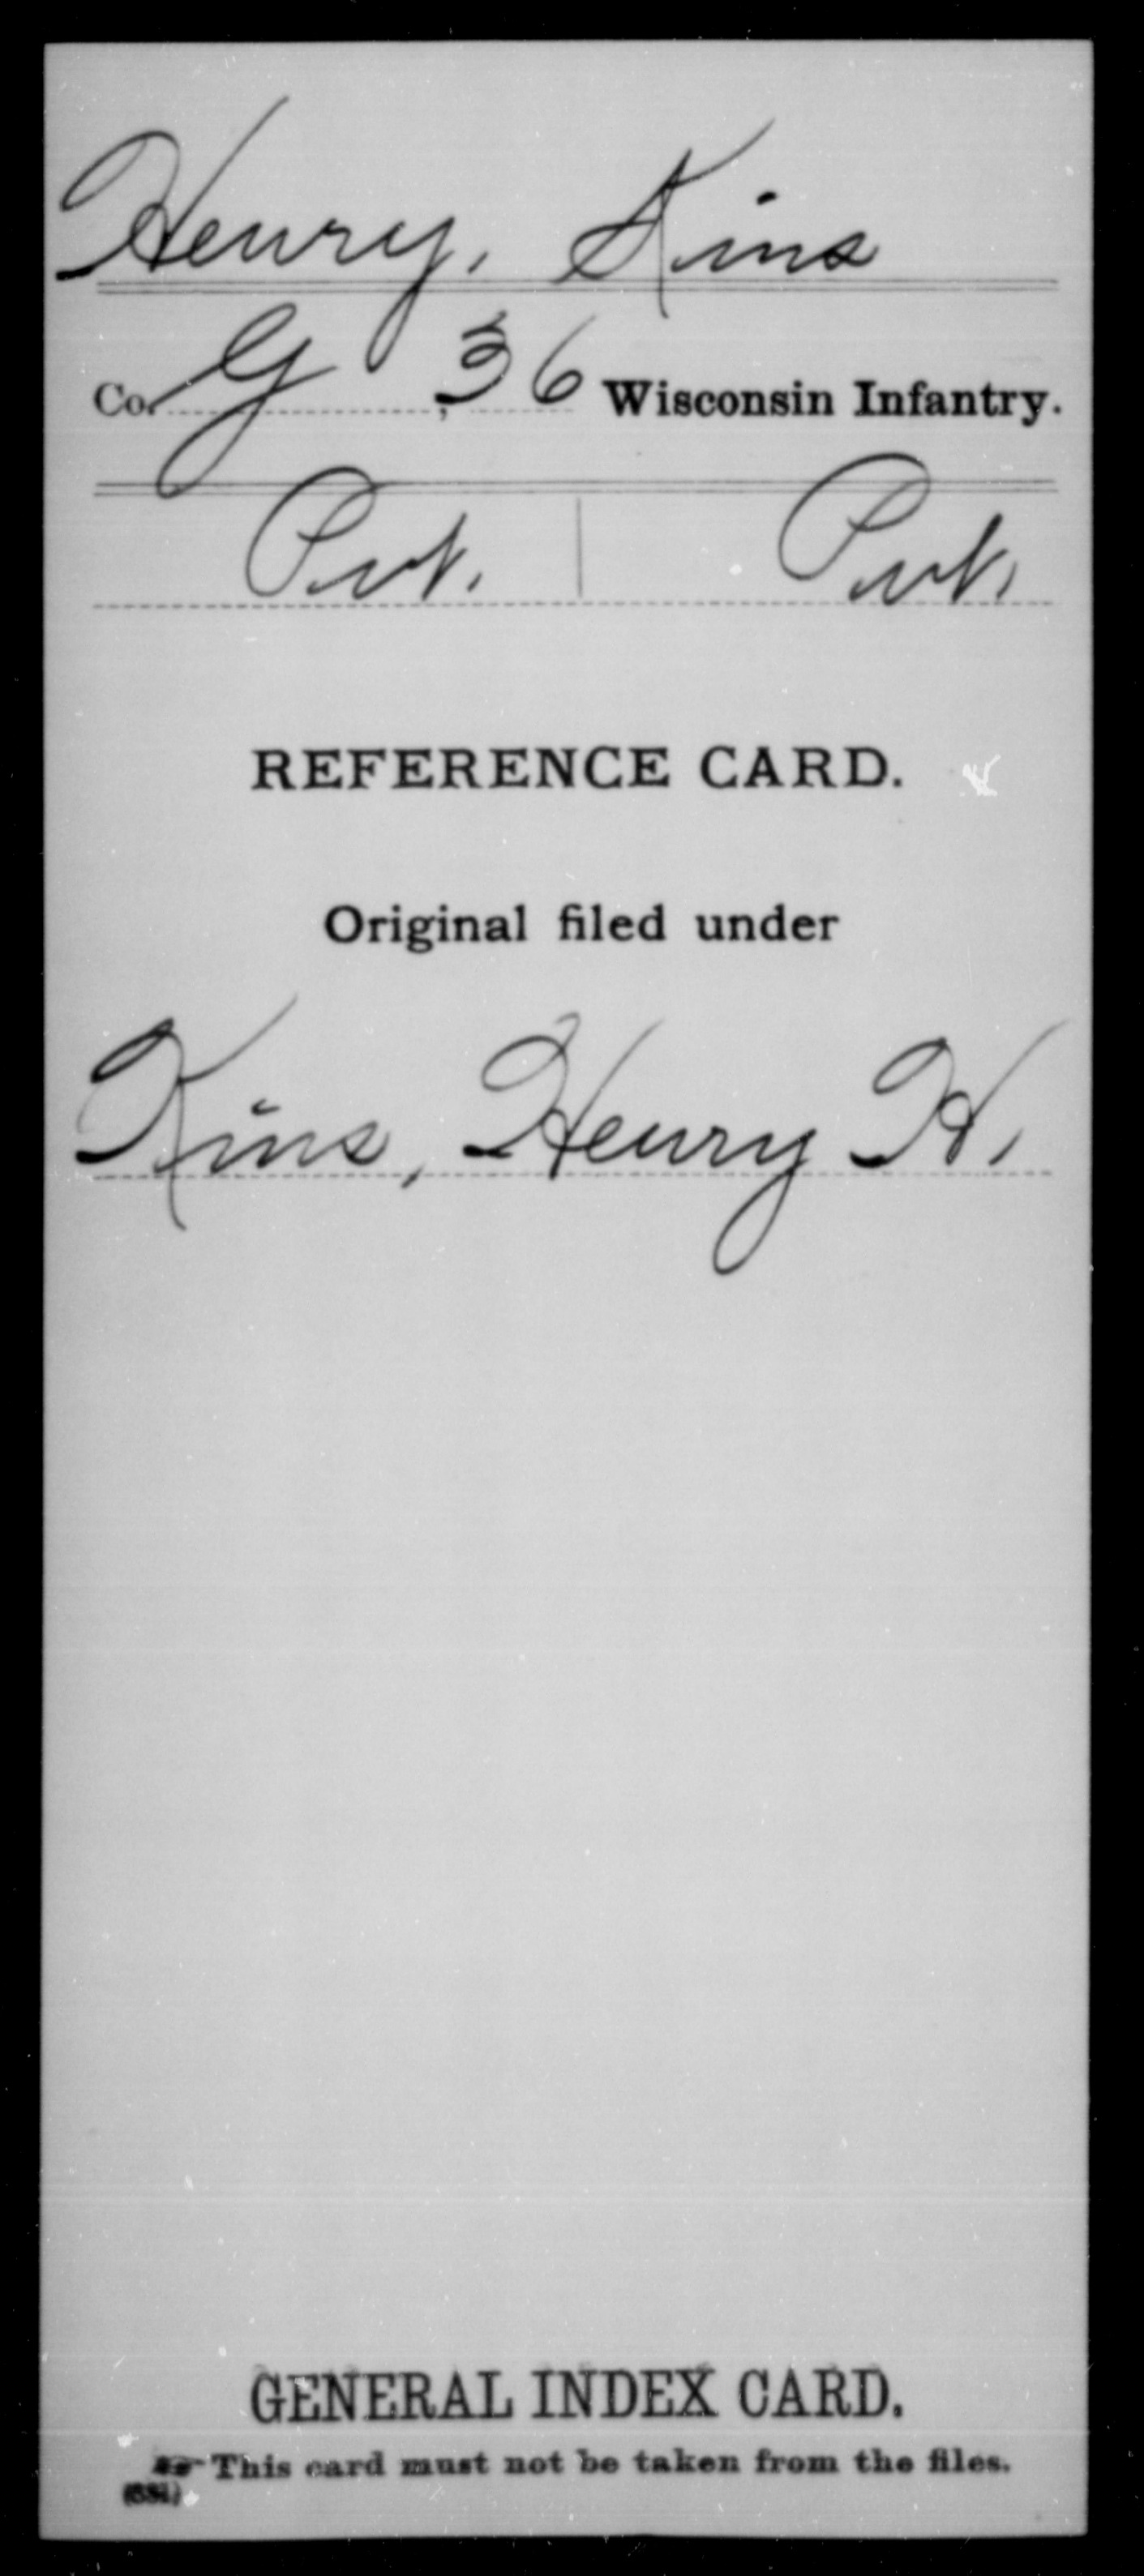 [Wisconsin] Henry, Kins - 36th Infantry, Company G